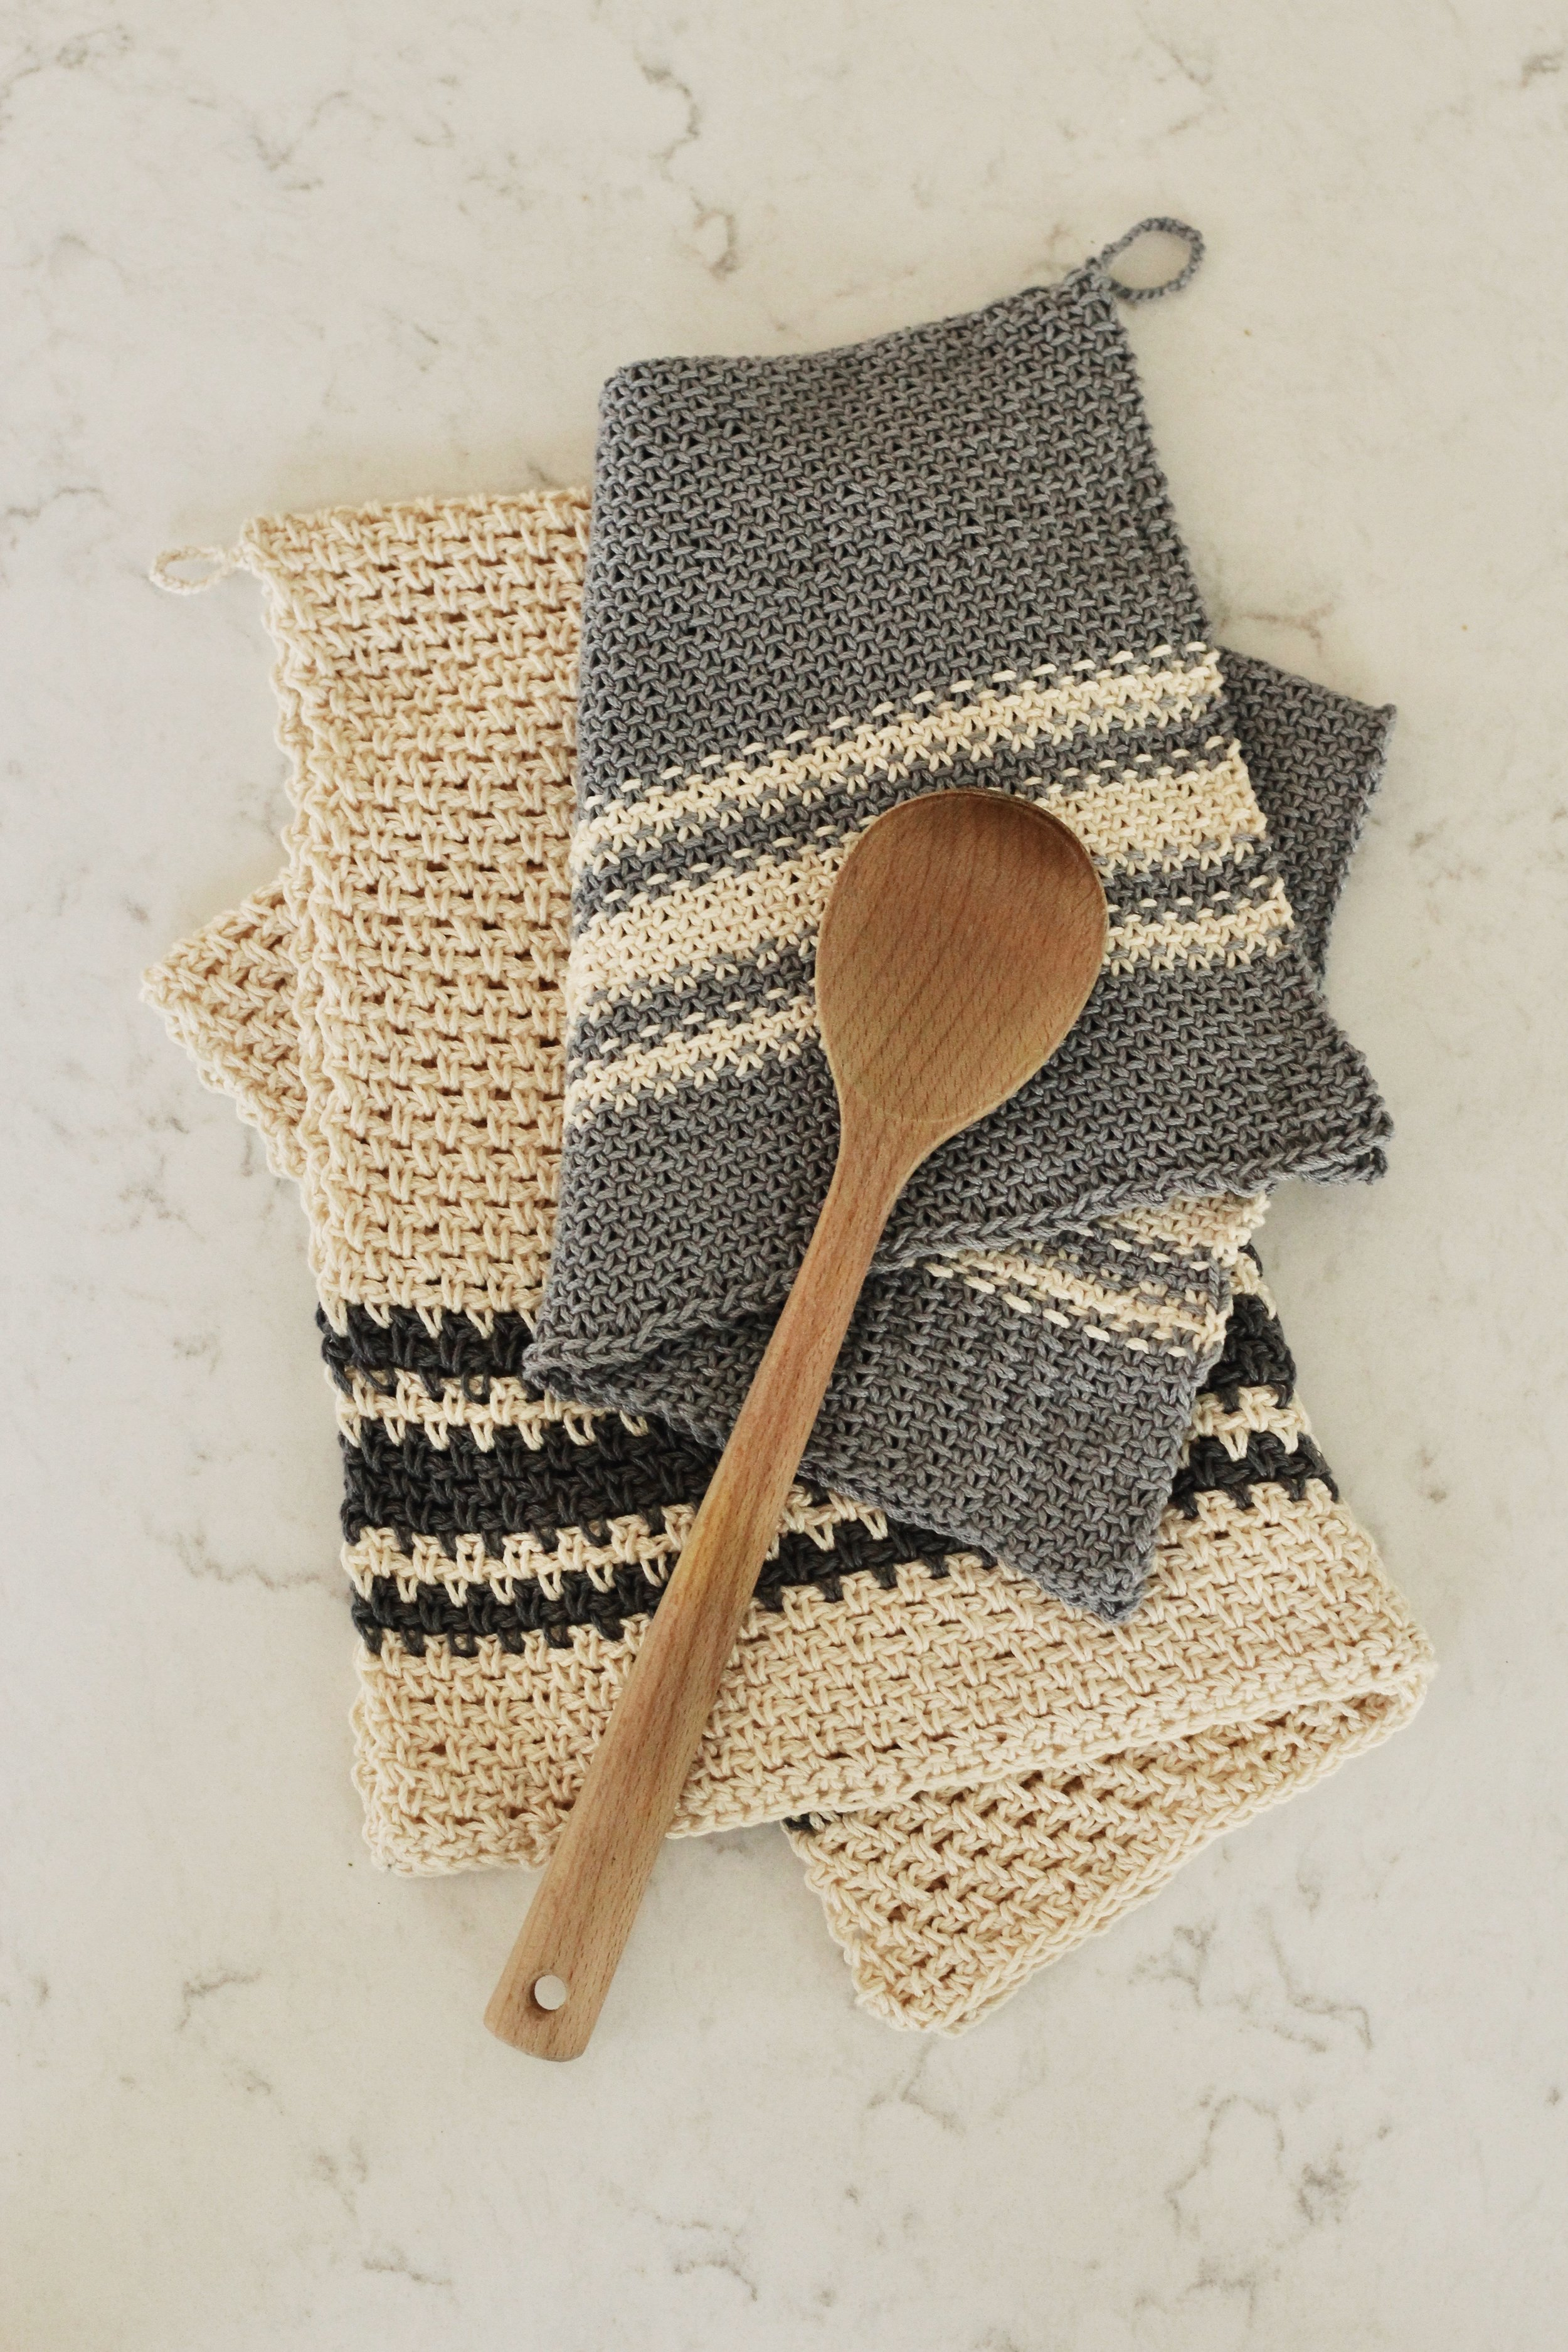 Marseille Tea Towel pattern by Two of Wands